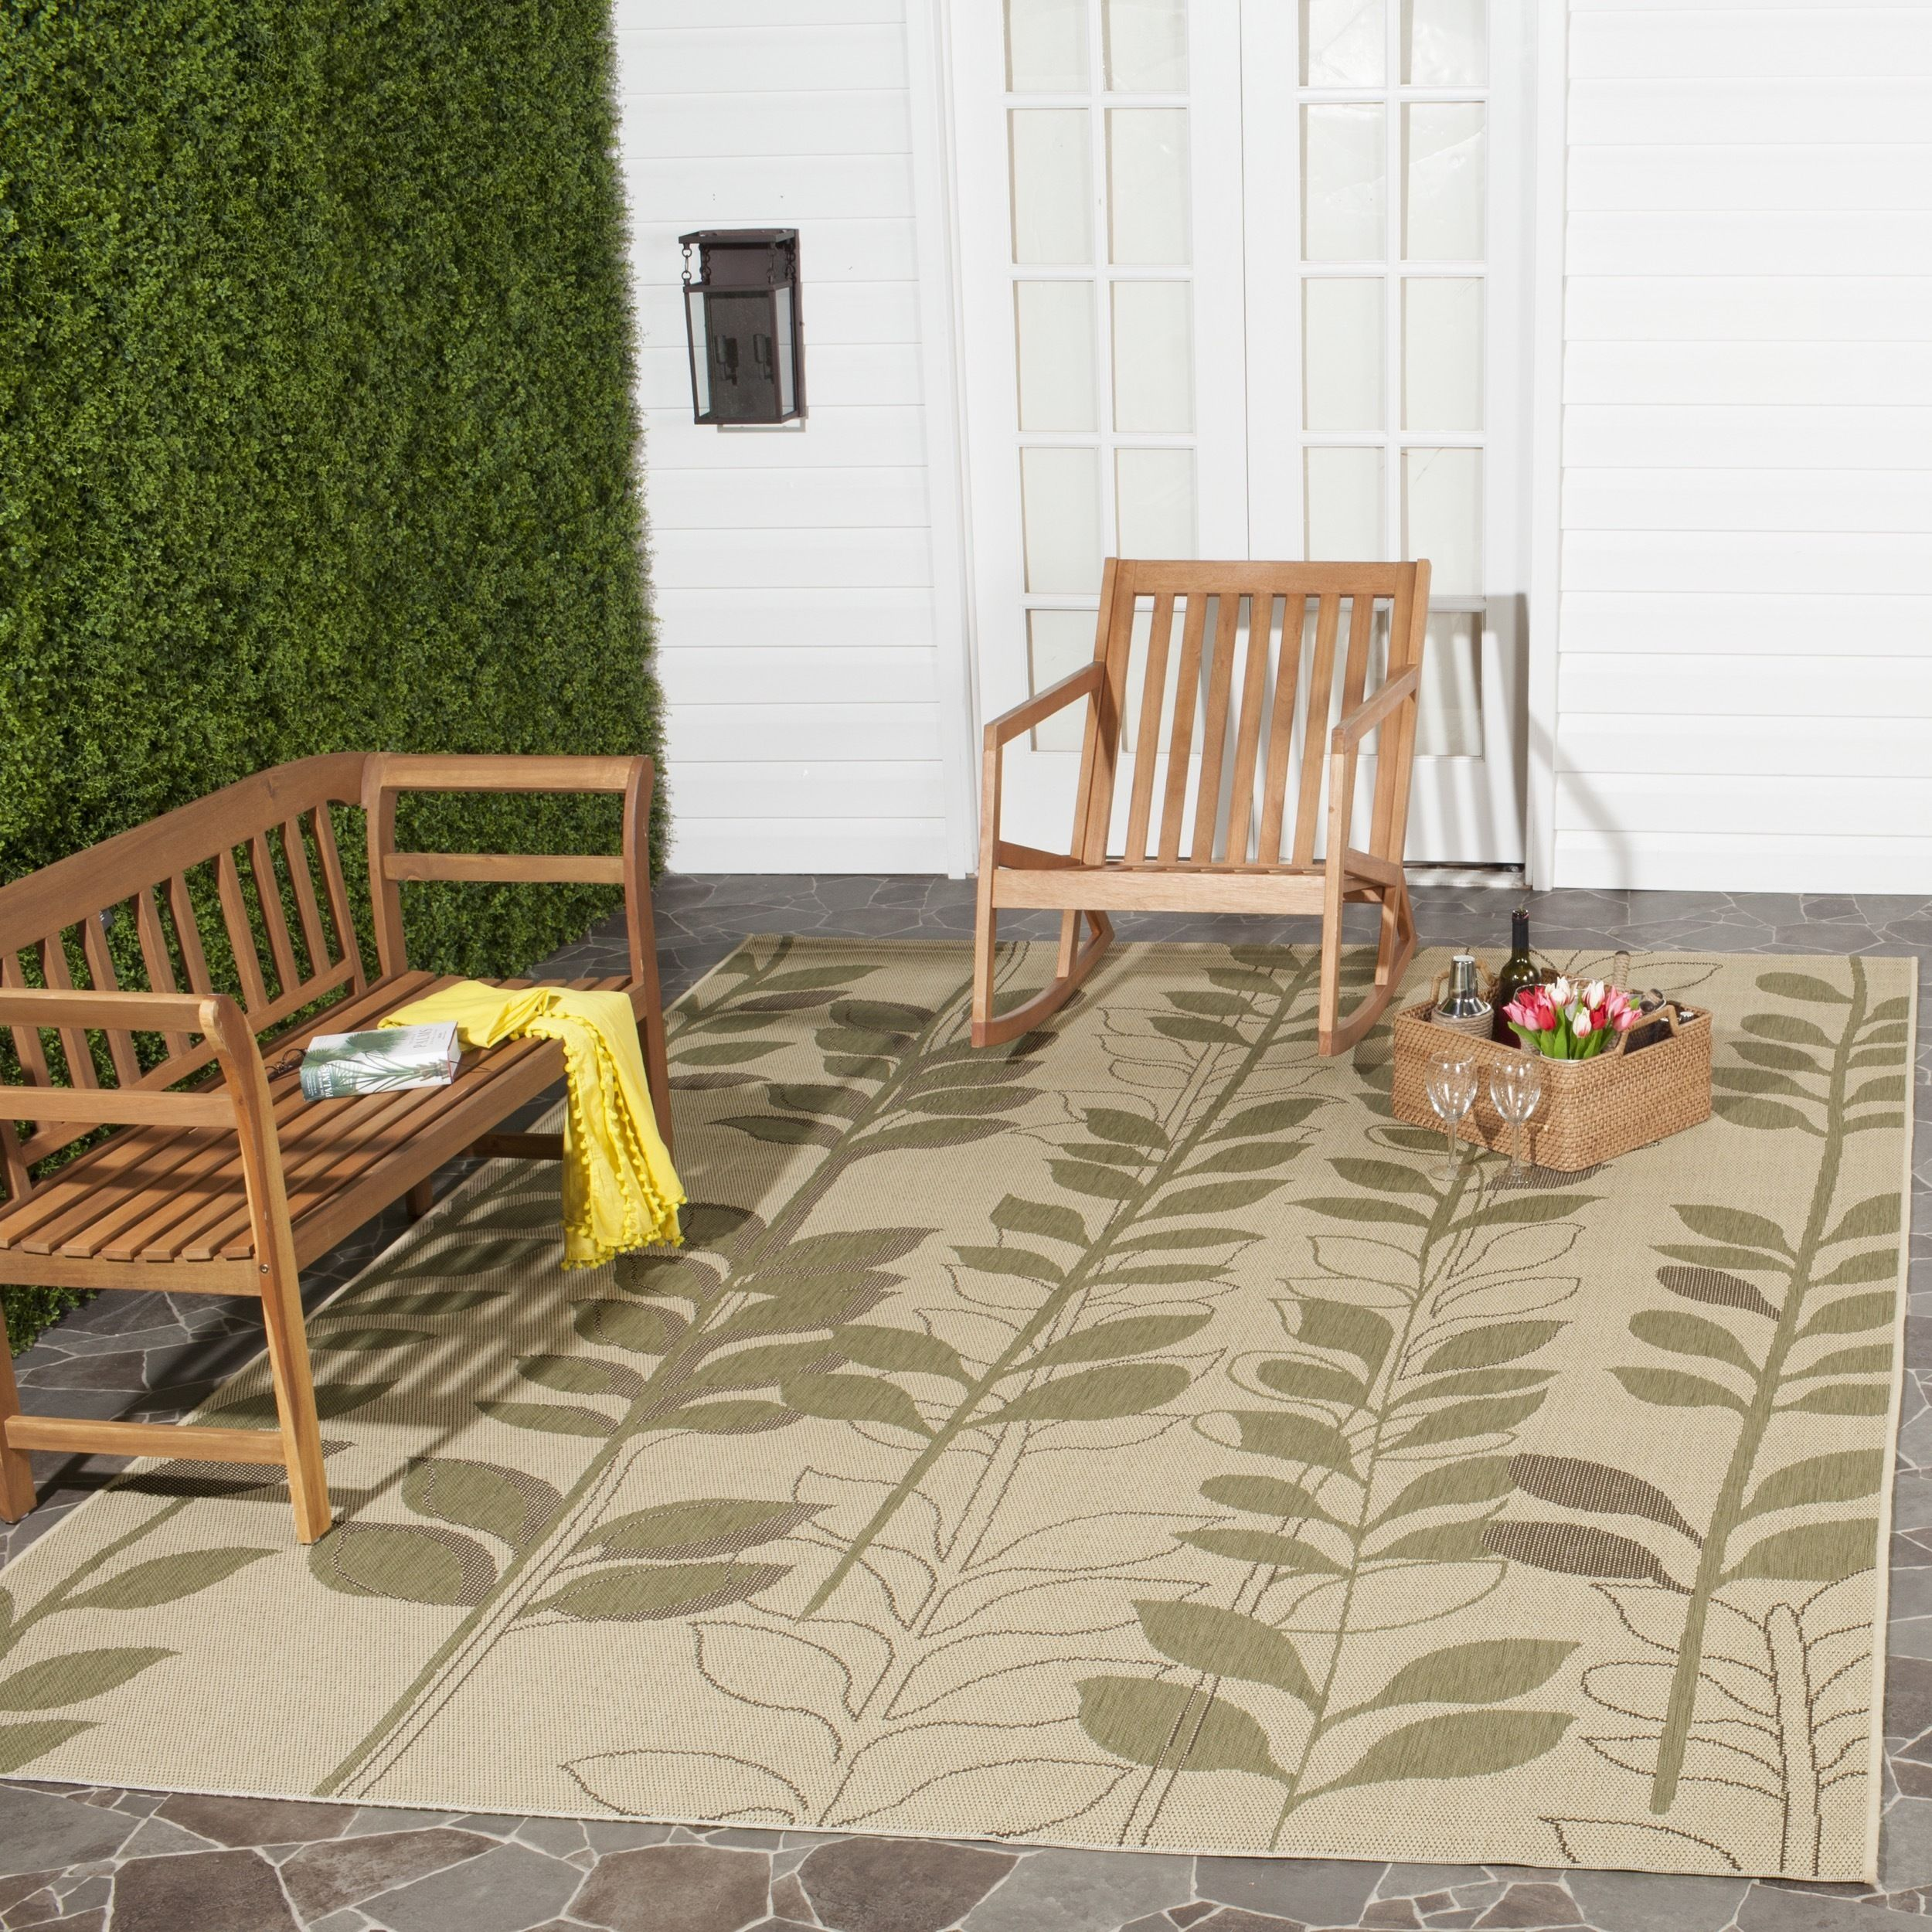 Whether Youre Looking For The Perfect Rug For Your Patio Or A